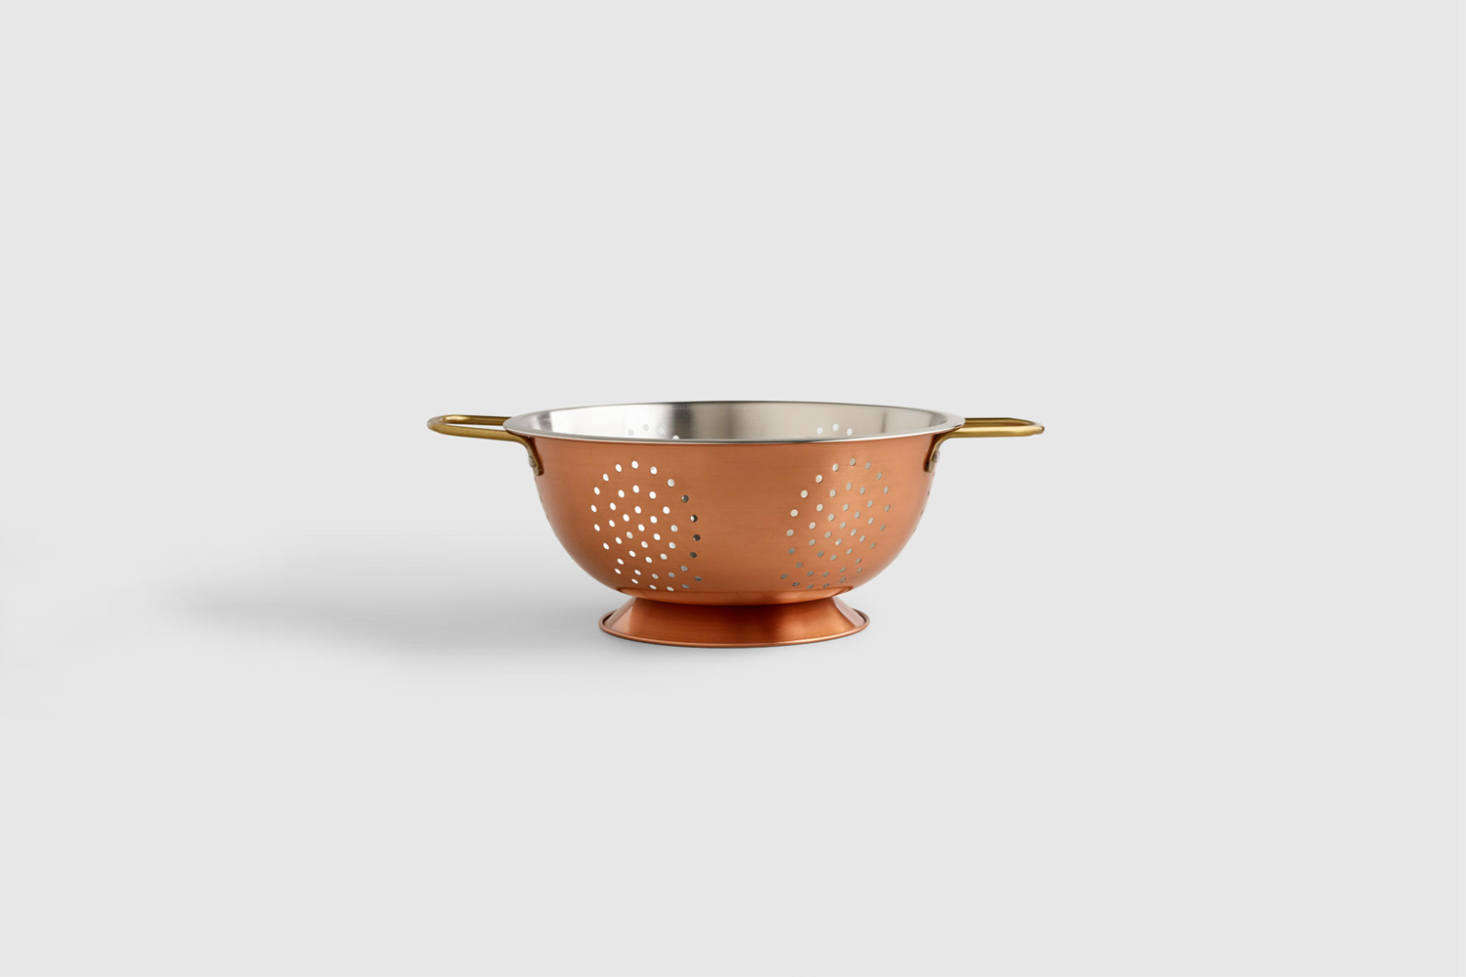 TheCopper Colander with a stainless steel interior is $src=